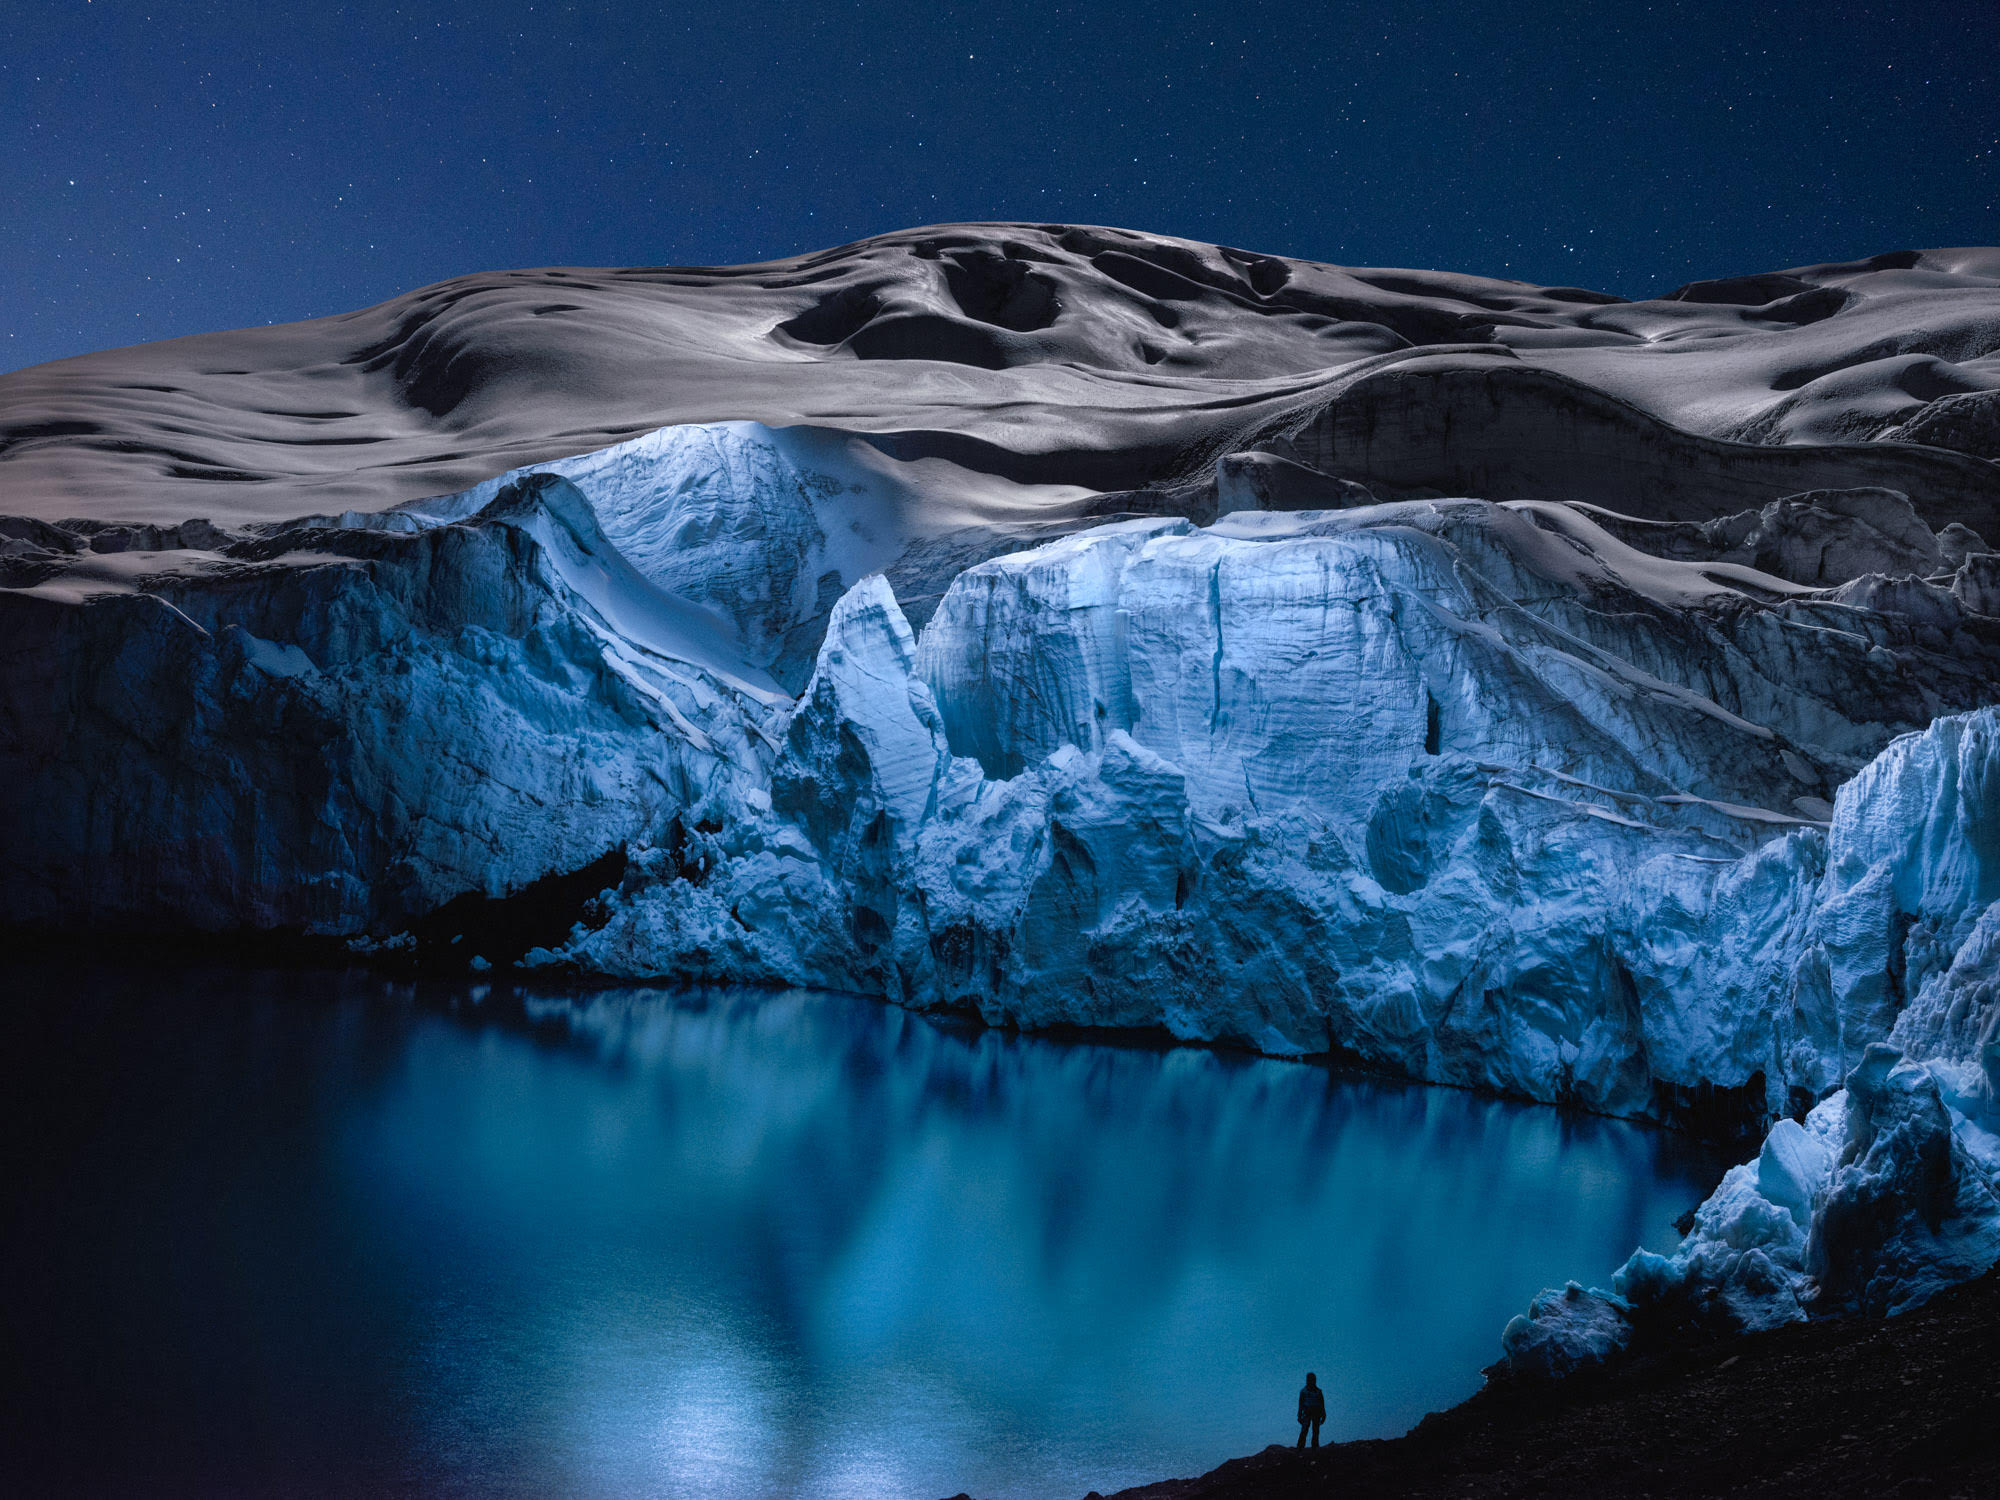 A Rare Tropical Glacier Captured at Night in Drone-Illuminated Photographs by Reuben Wu